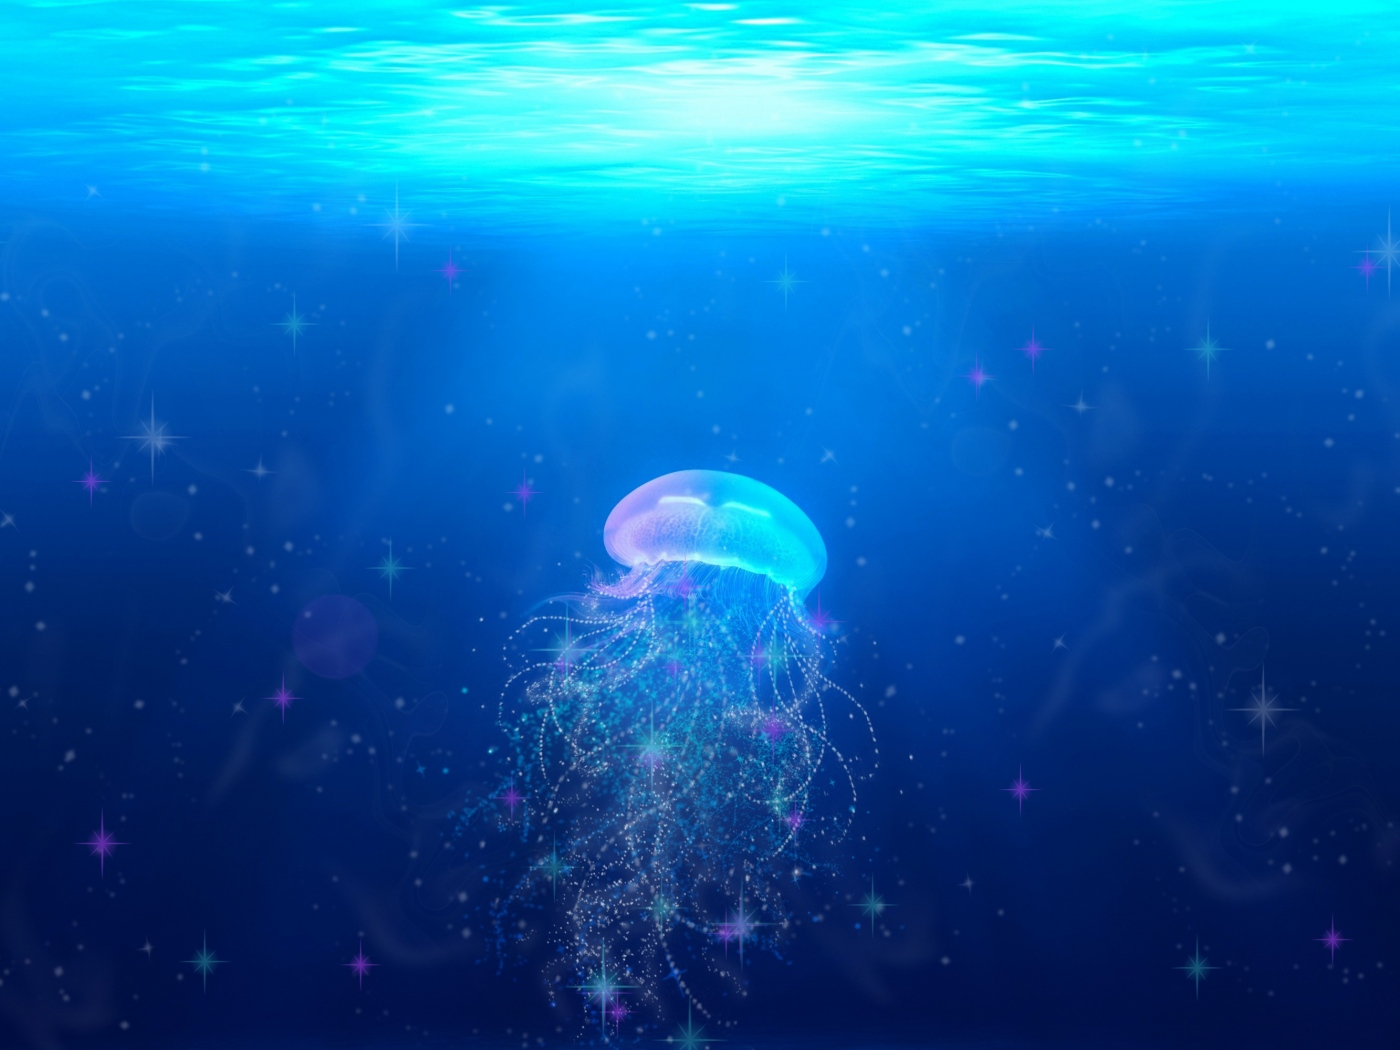 jellyfish_underwater_world_swim_tentacles_115120_1400x1050